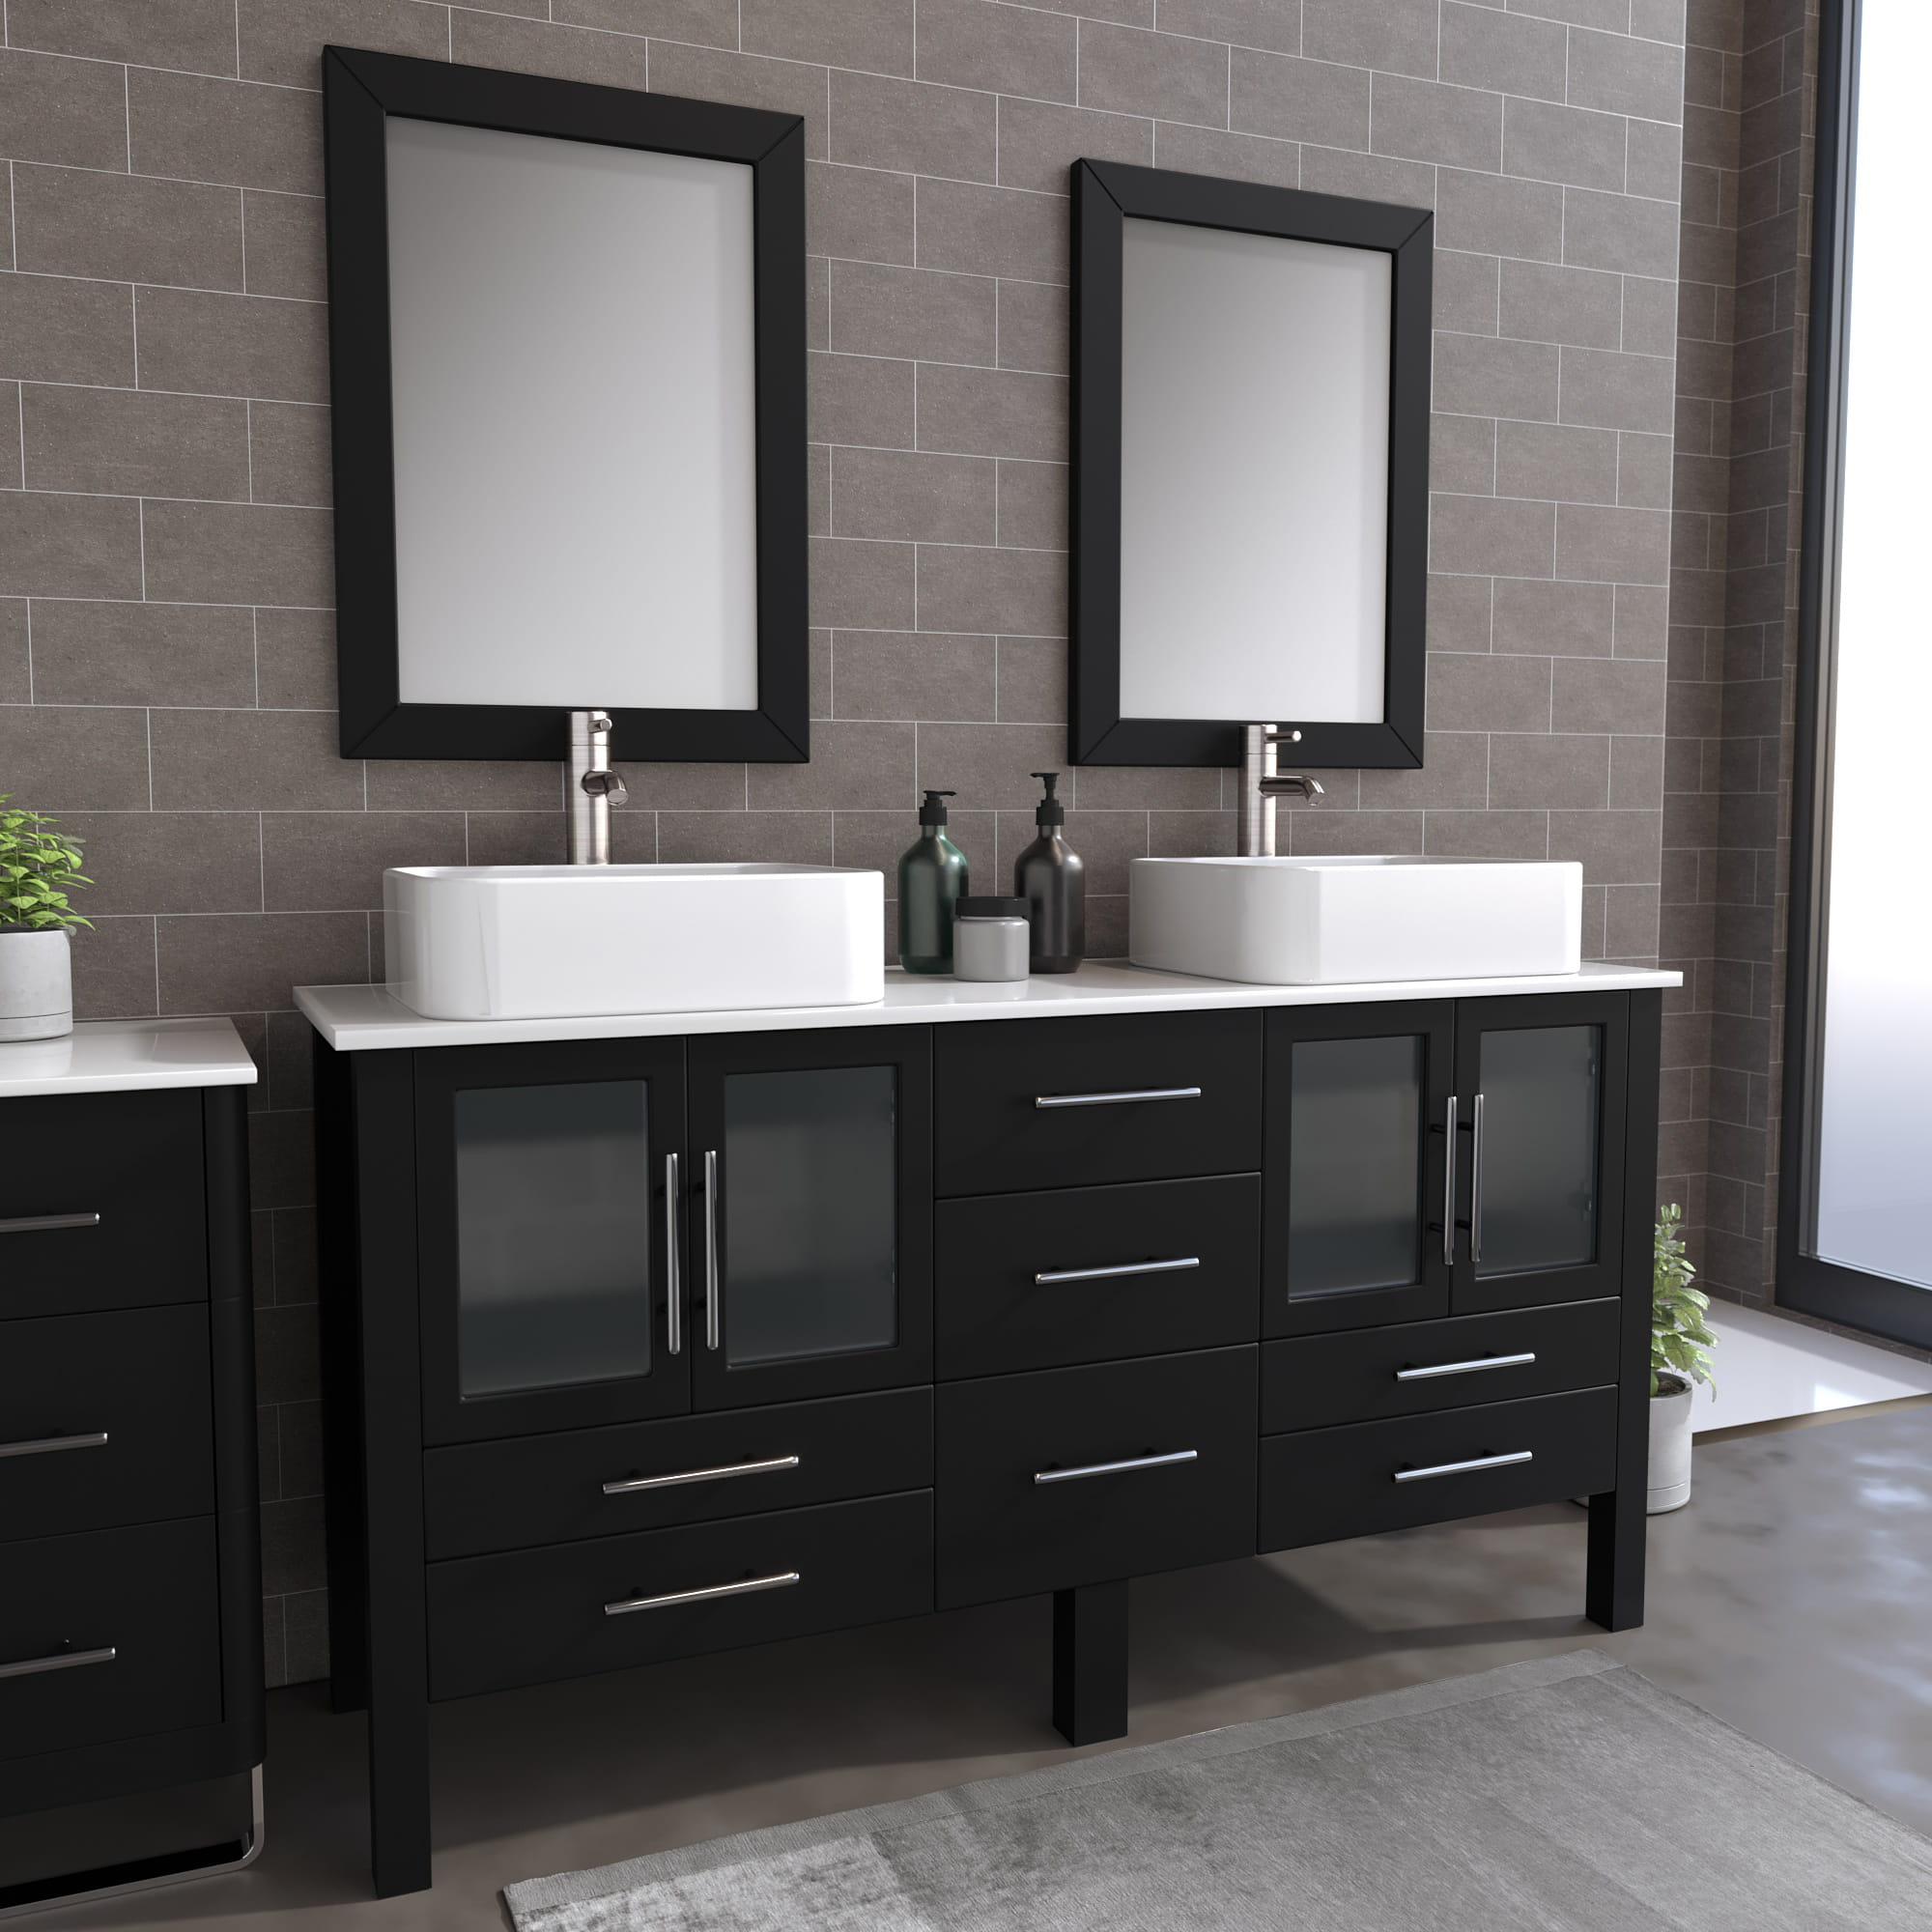 8119_BN_1 Espresso Double Porcelain Vessel Sink Vanity Set